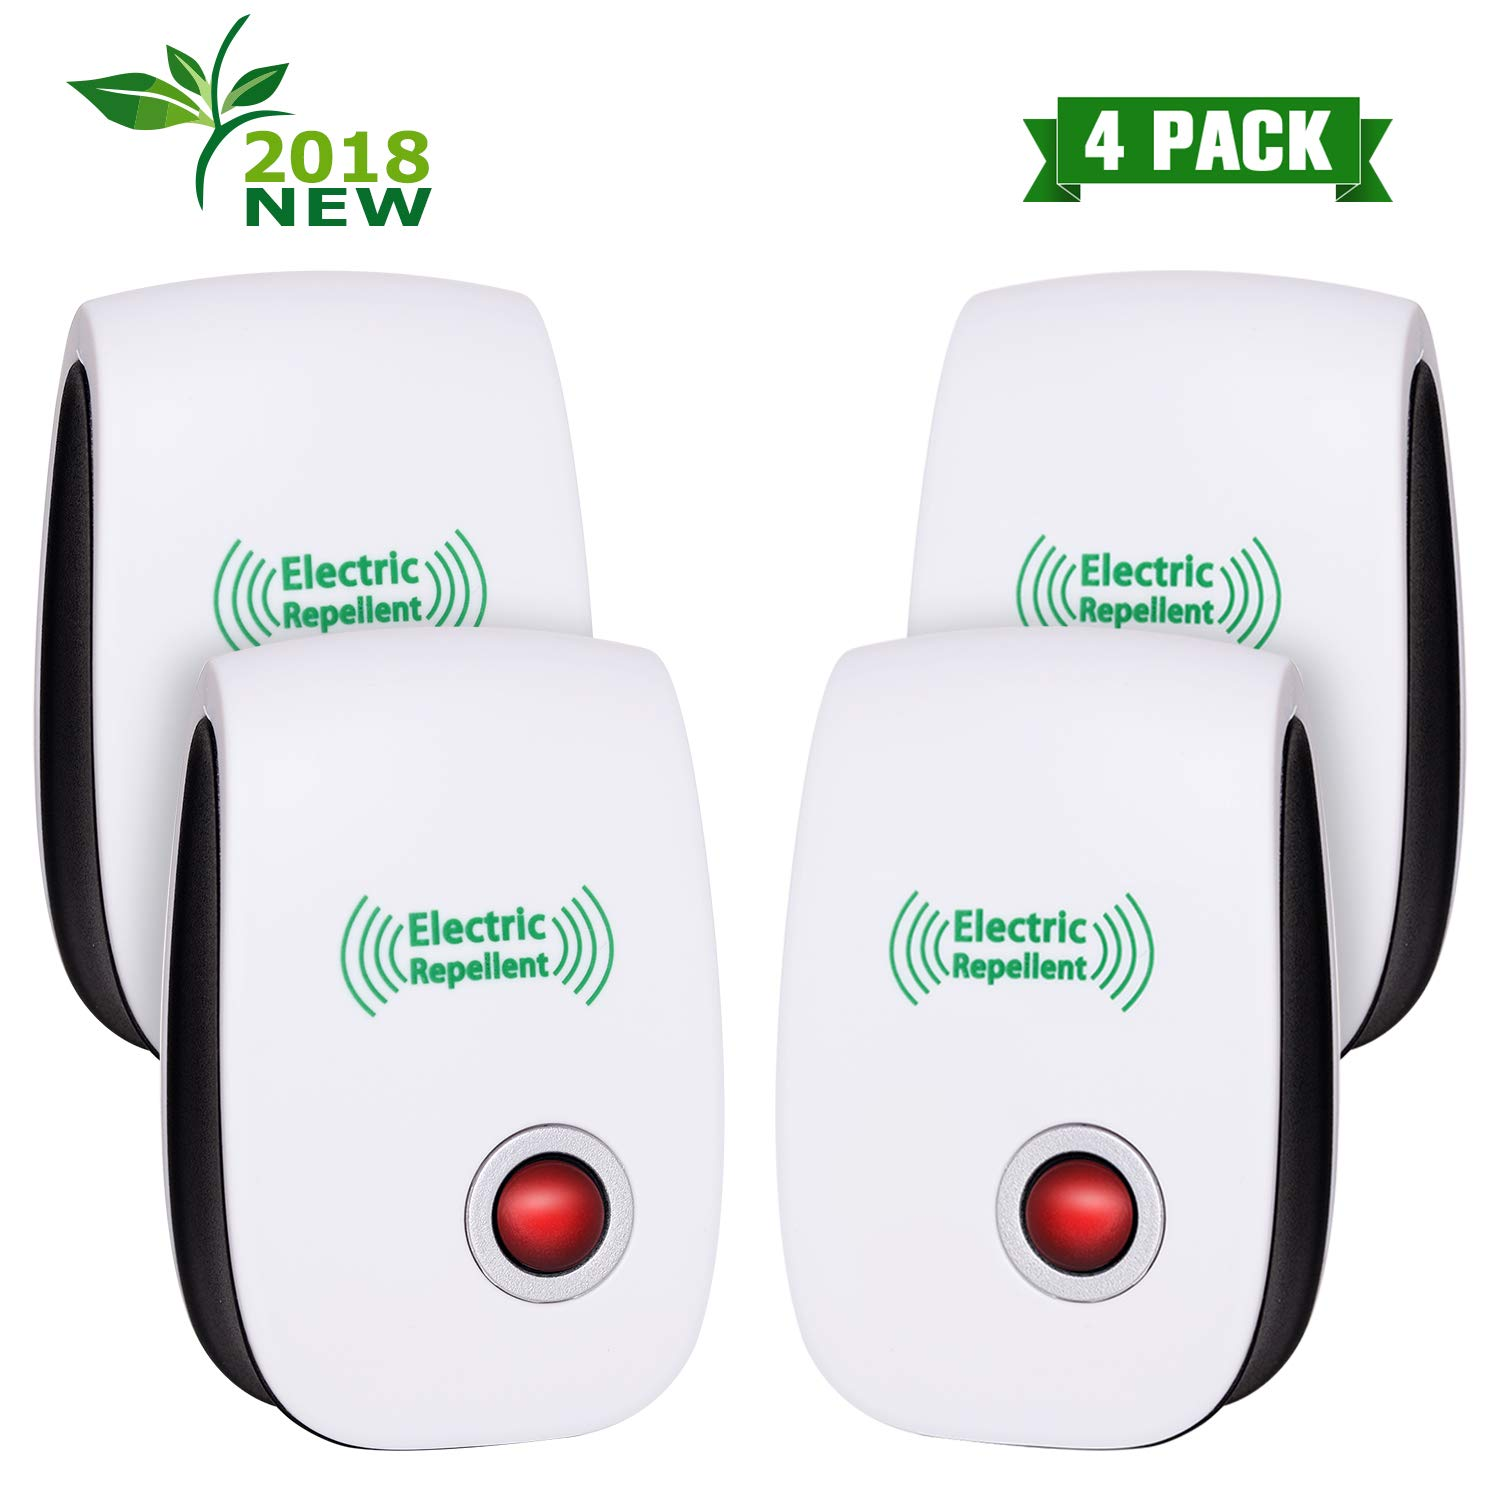 VEPOWER [2018 Upgraded] Ultrasonic Pest Repellent Electronic Mice Repeller, Plug in for Bugs and Insects Mice Ant Mosquito Spider Rodent Roach Child and Pets Safe Control (4 Packs)